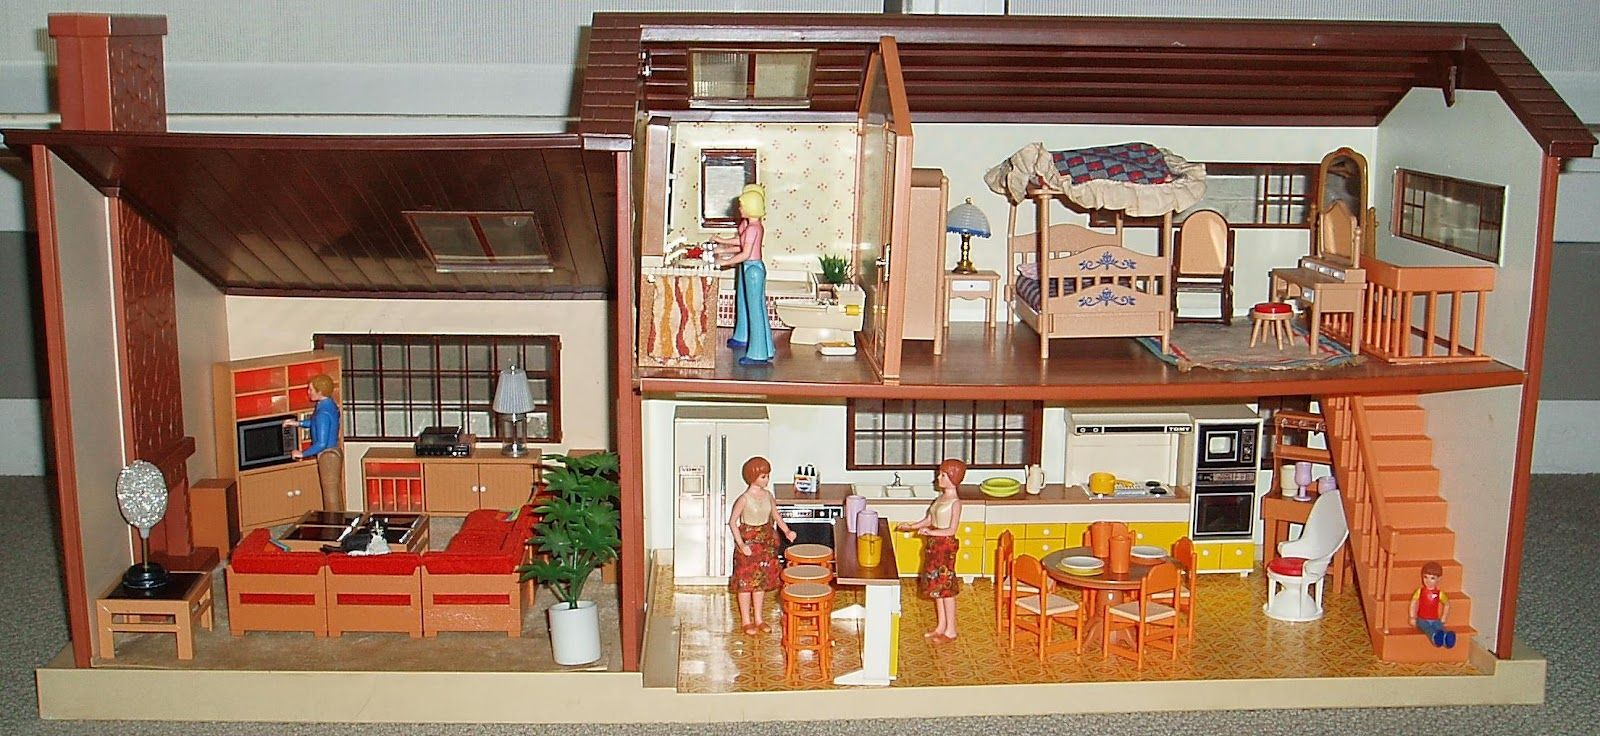 cbdb51426777152d8d92b0f71af80db6 - Tomy Smaller Homes And Gardens Dollhouse For Sale